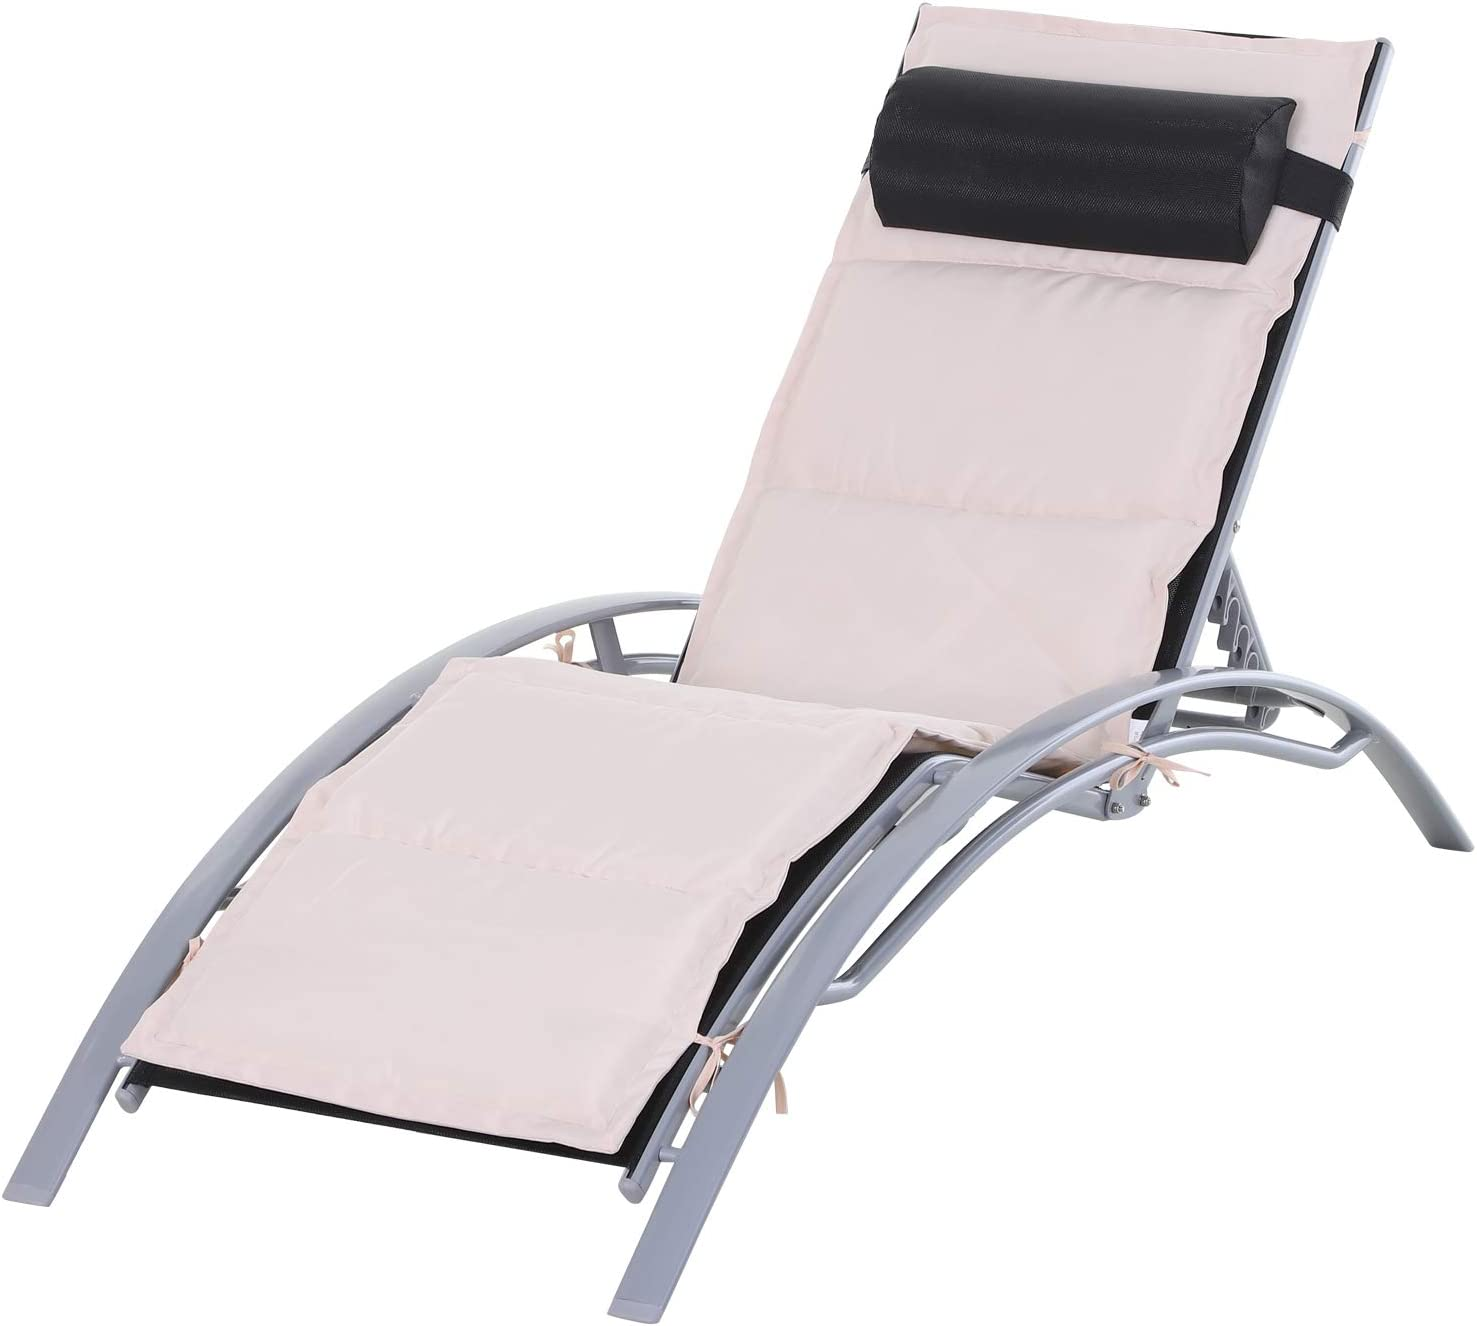 Outsunny Adjustable Lounge Chair